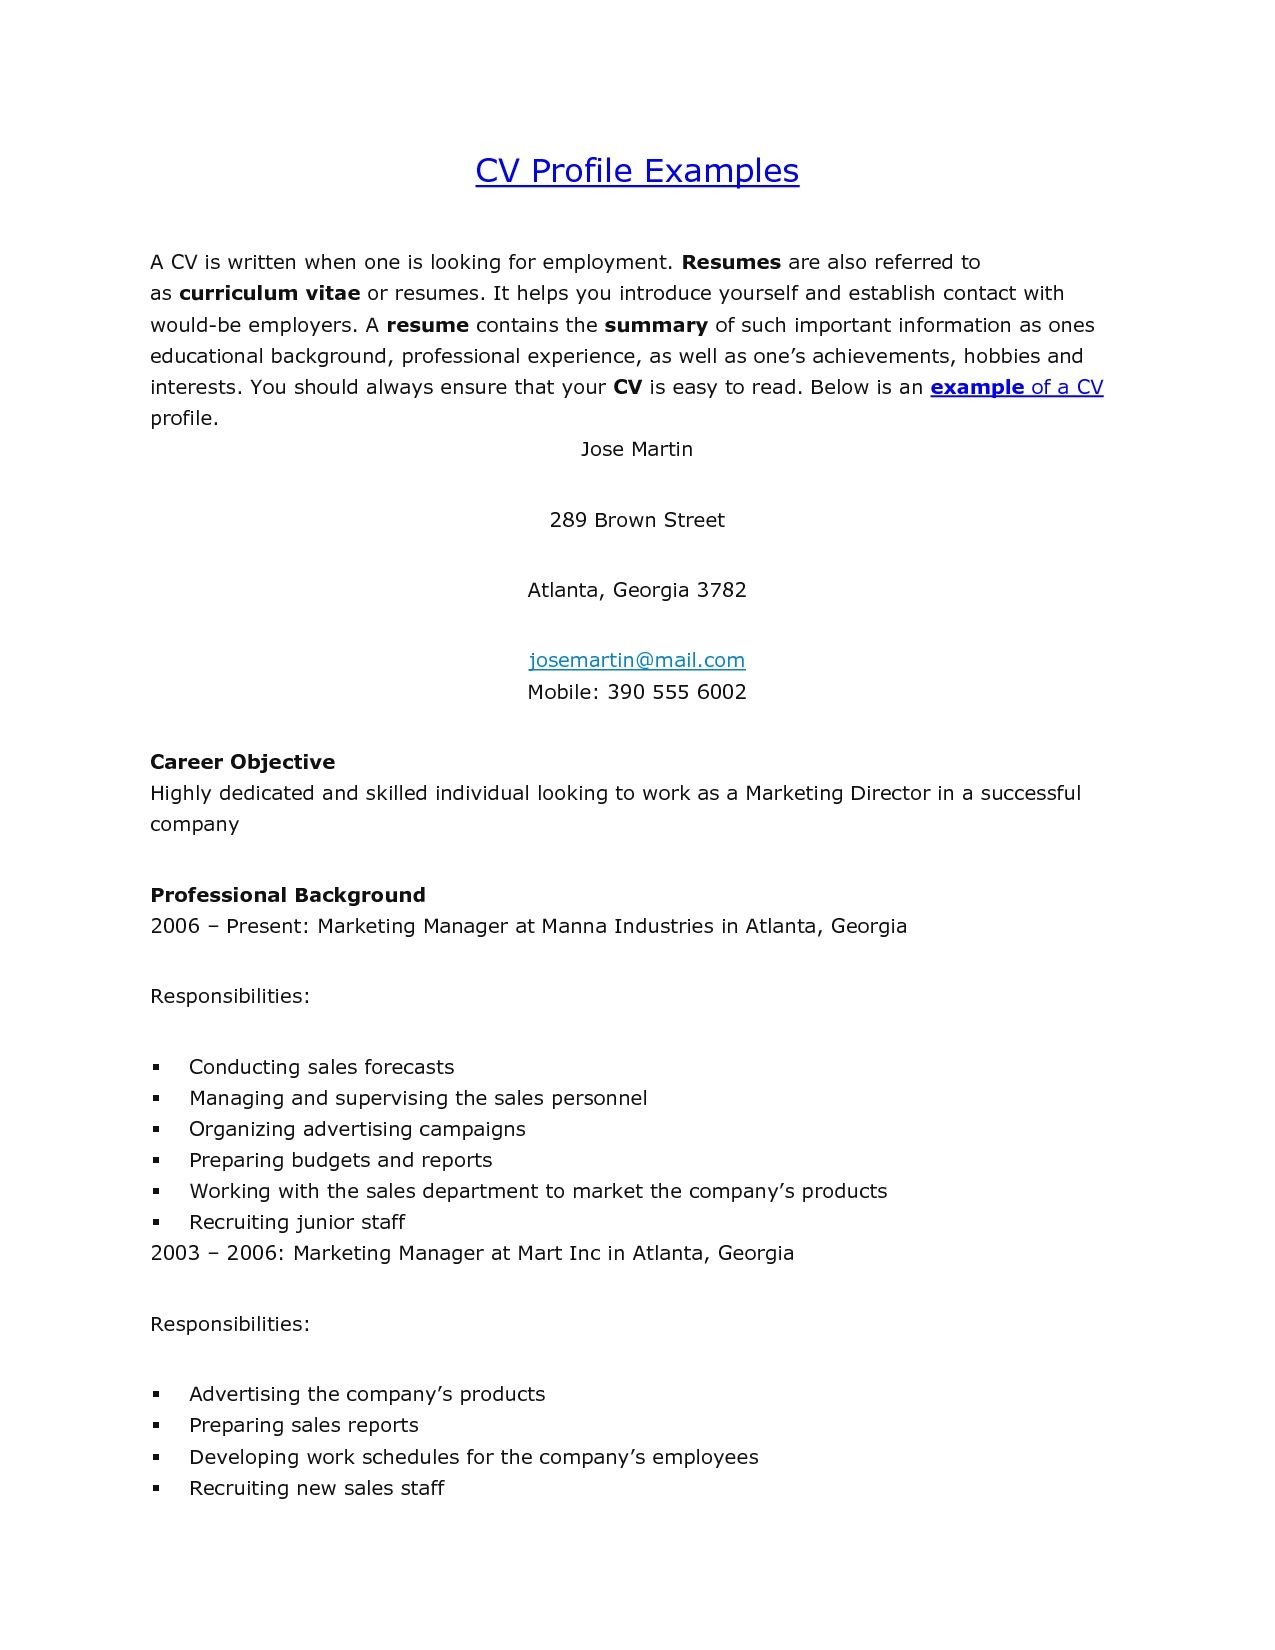 sample cv professional profile